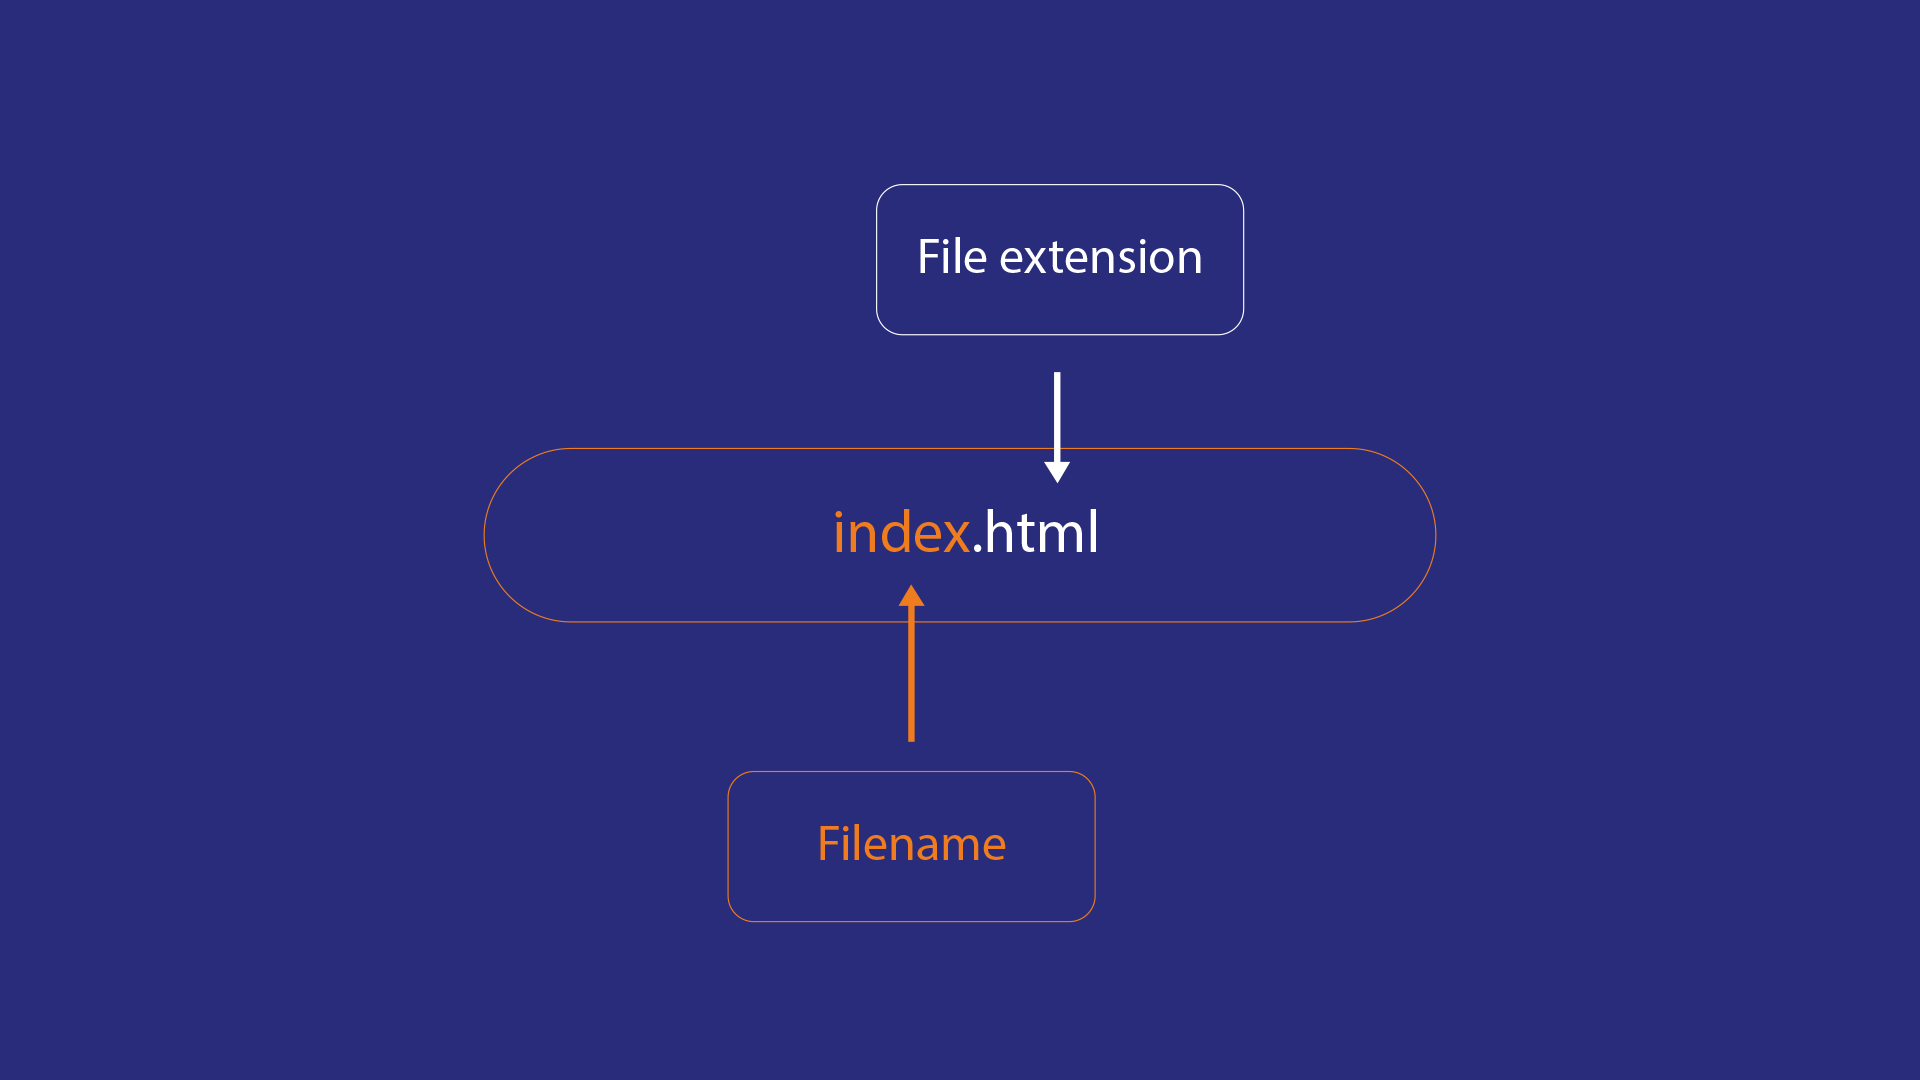 Filename and file extension